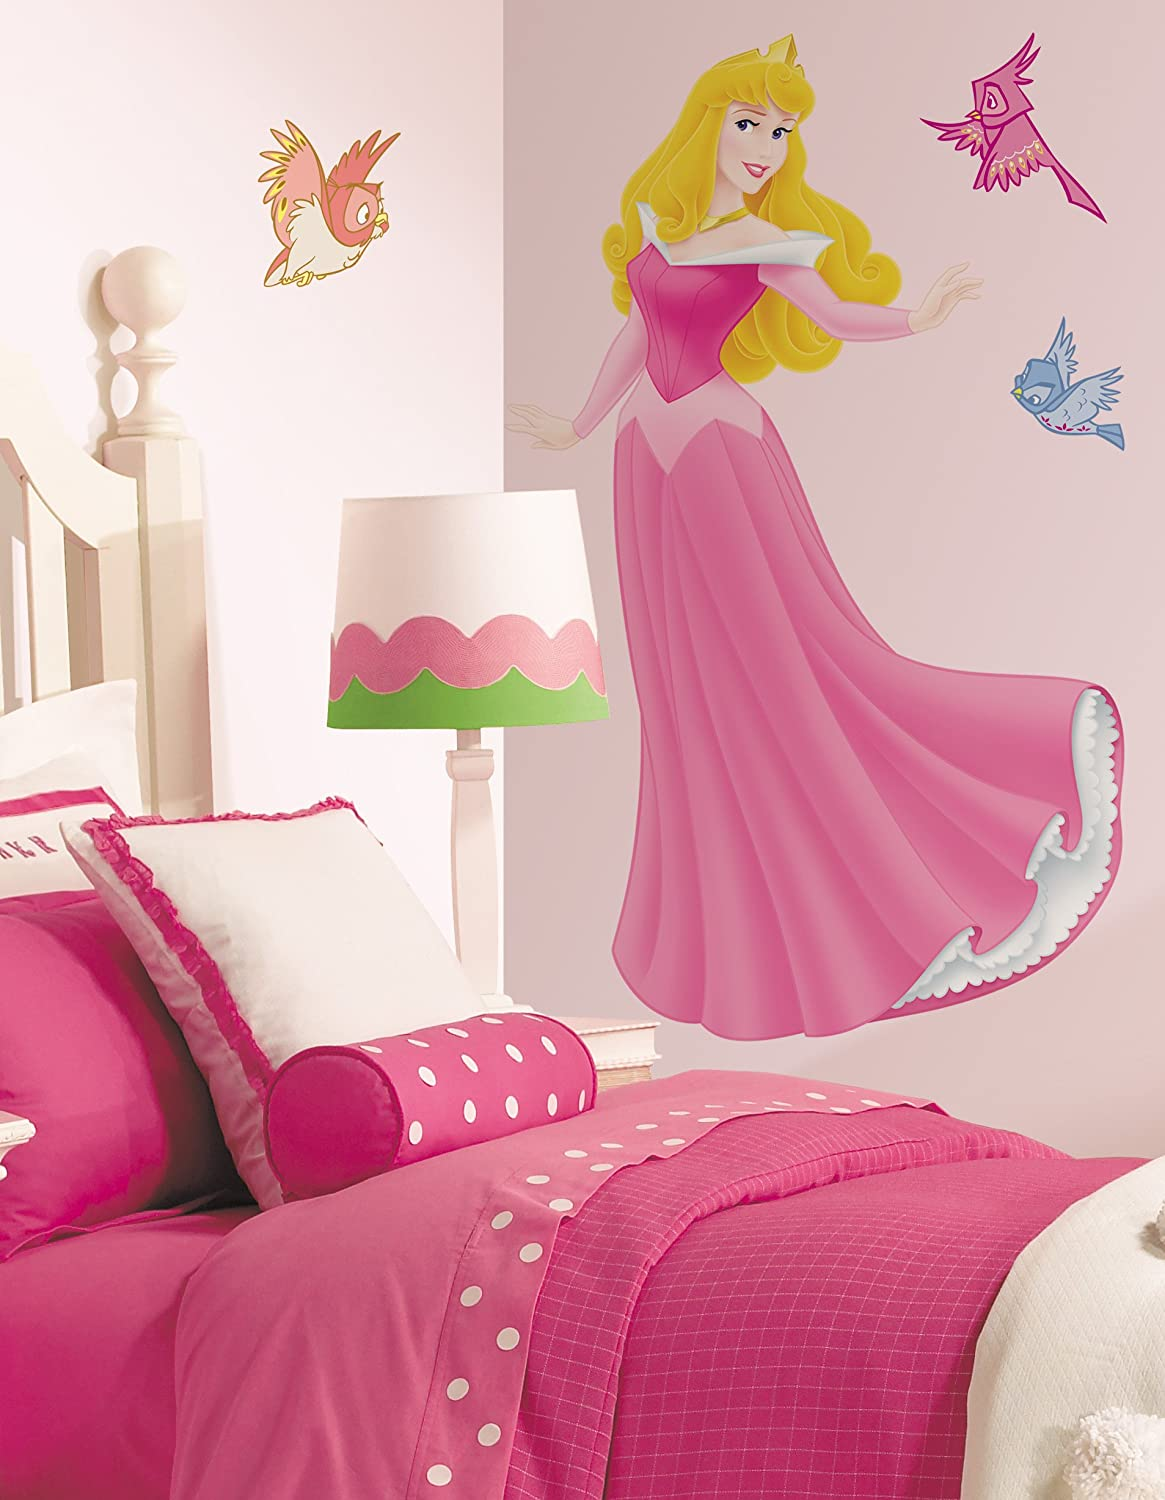 RoomMates Disney Princess Sleeping Beauty Giant Wall Sticker: Amazon.co.uk:  Baby Part 40